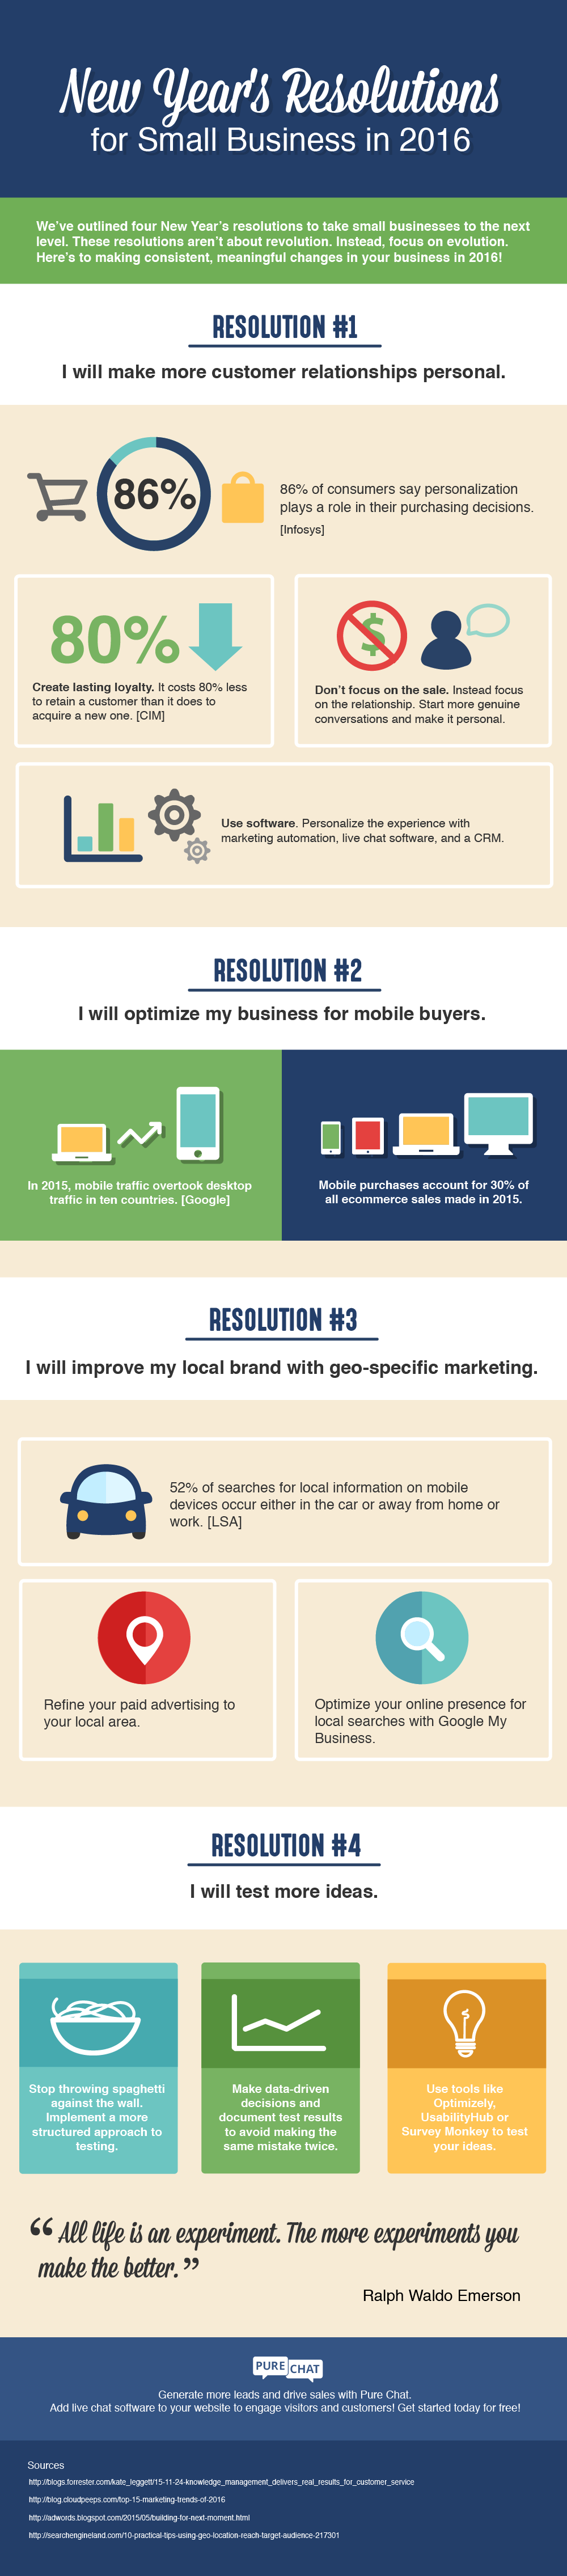 small business resolutions 2016